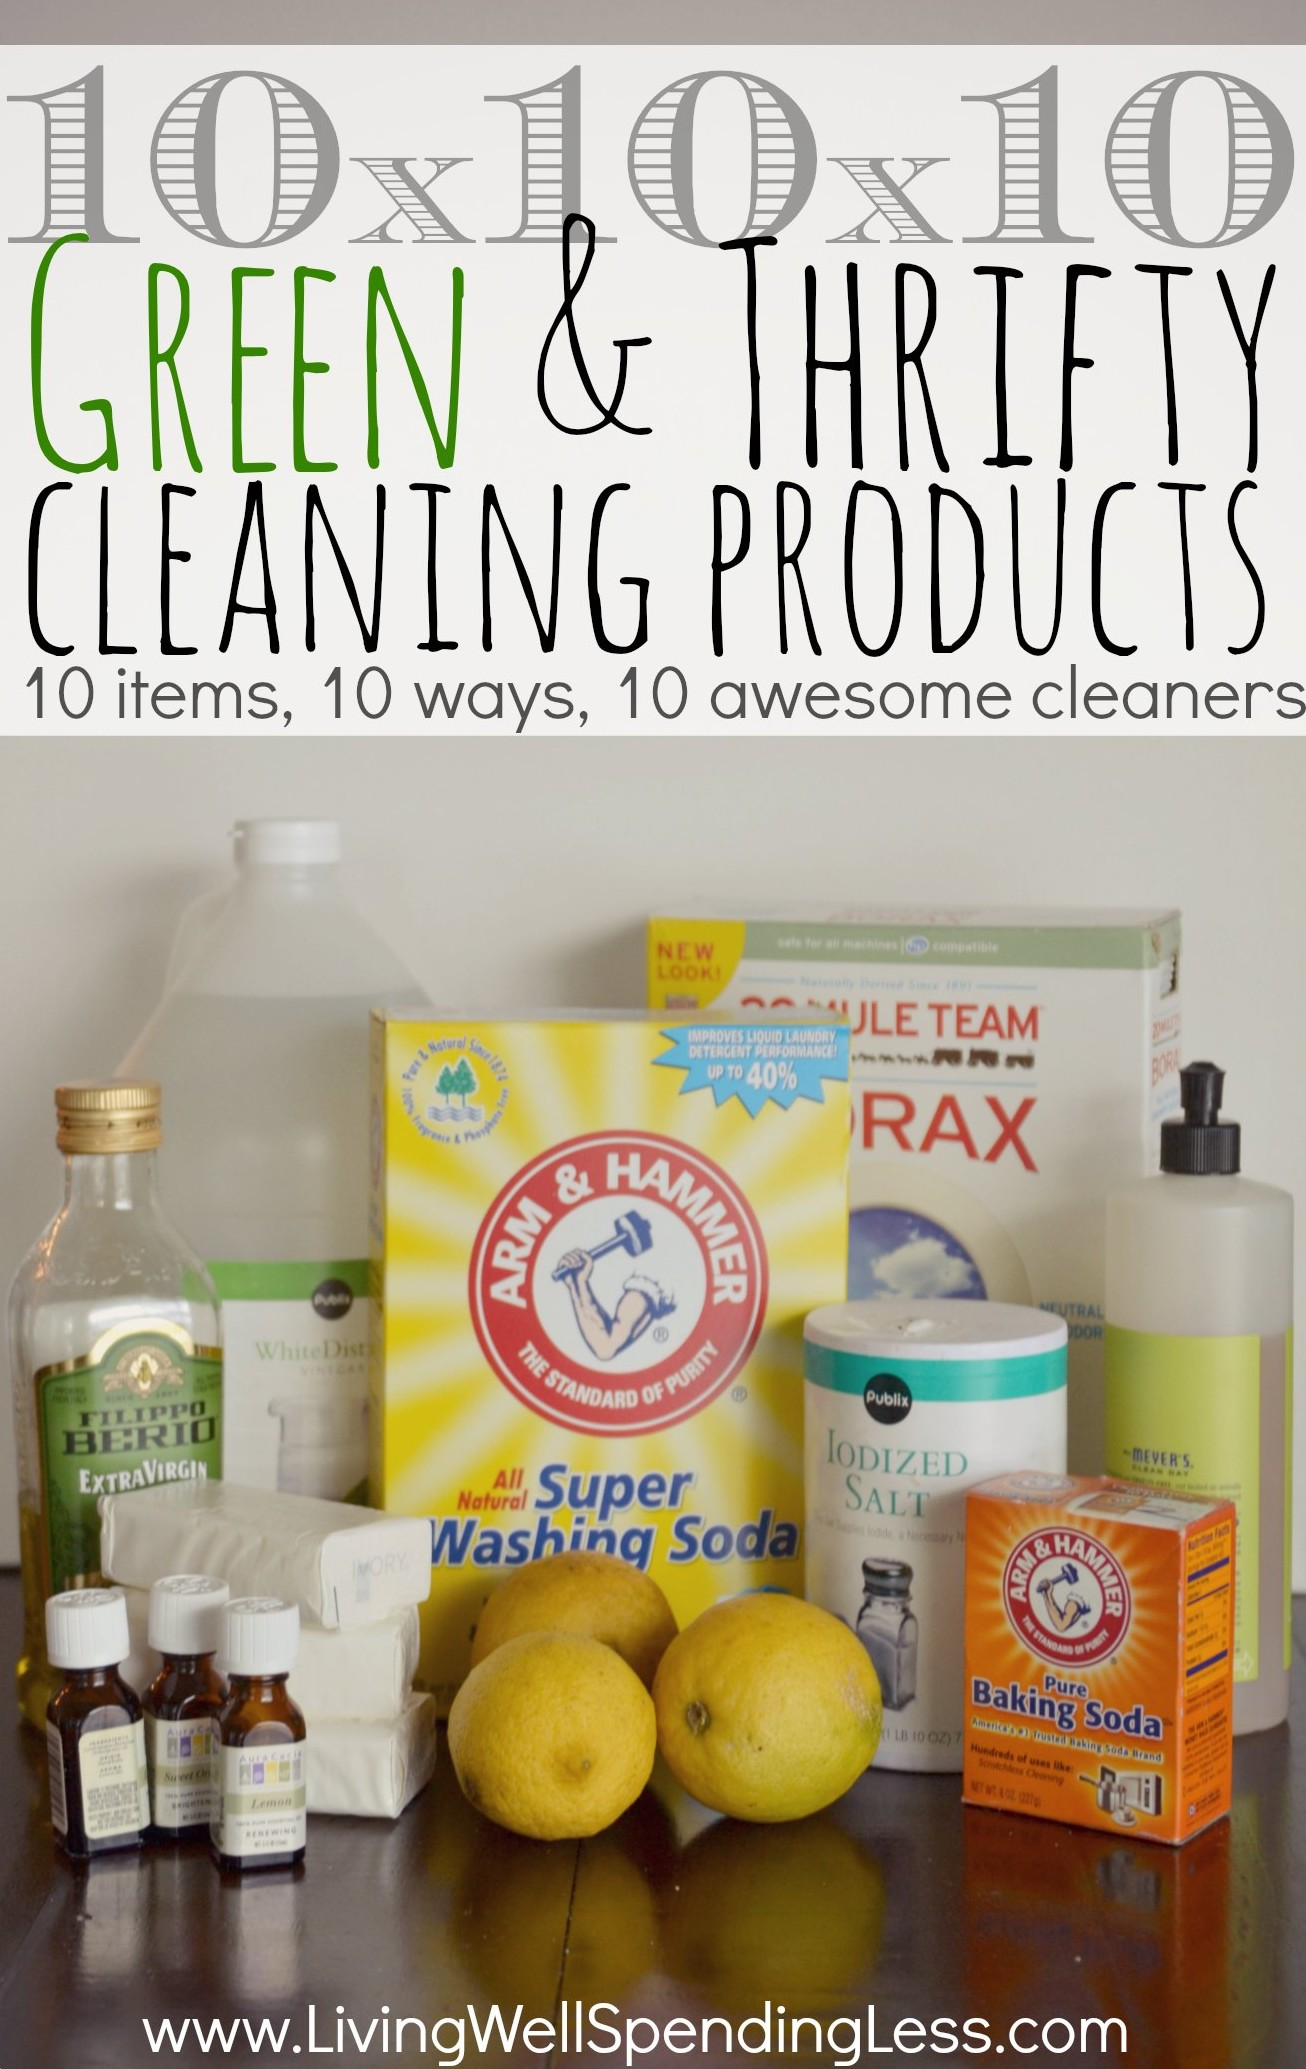 10x10x10 Green & Thrifty Cleaning Products-this is really cool ...